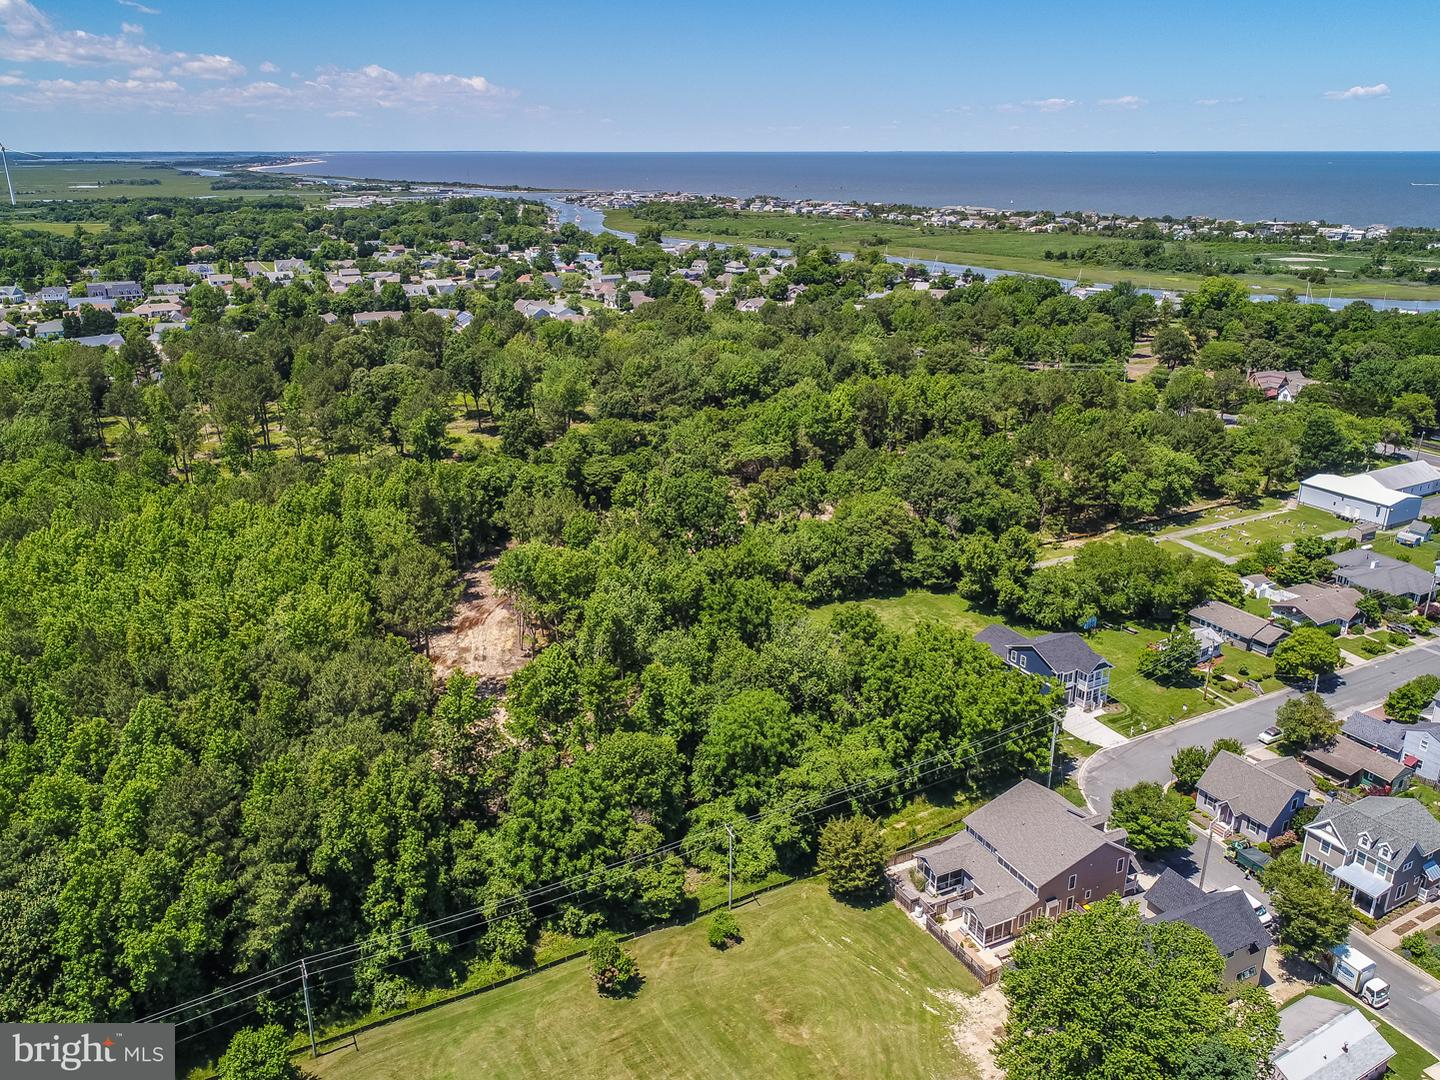 1002047892-300471115581-2018-08-04-07-32-08 Lot 20 Virden Way | Lewes, DE Real Estate For Sale | MLS# 1002047892  - Rehoboth Beach Real Estate - Bryce Lingo and Shaun Tull REALTORS, Rehoboth Beach, Delaware